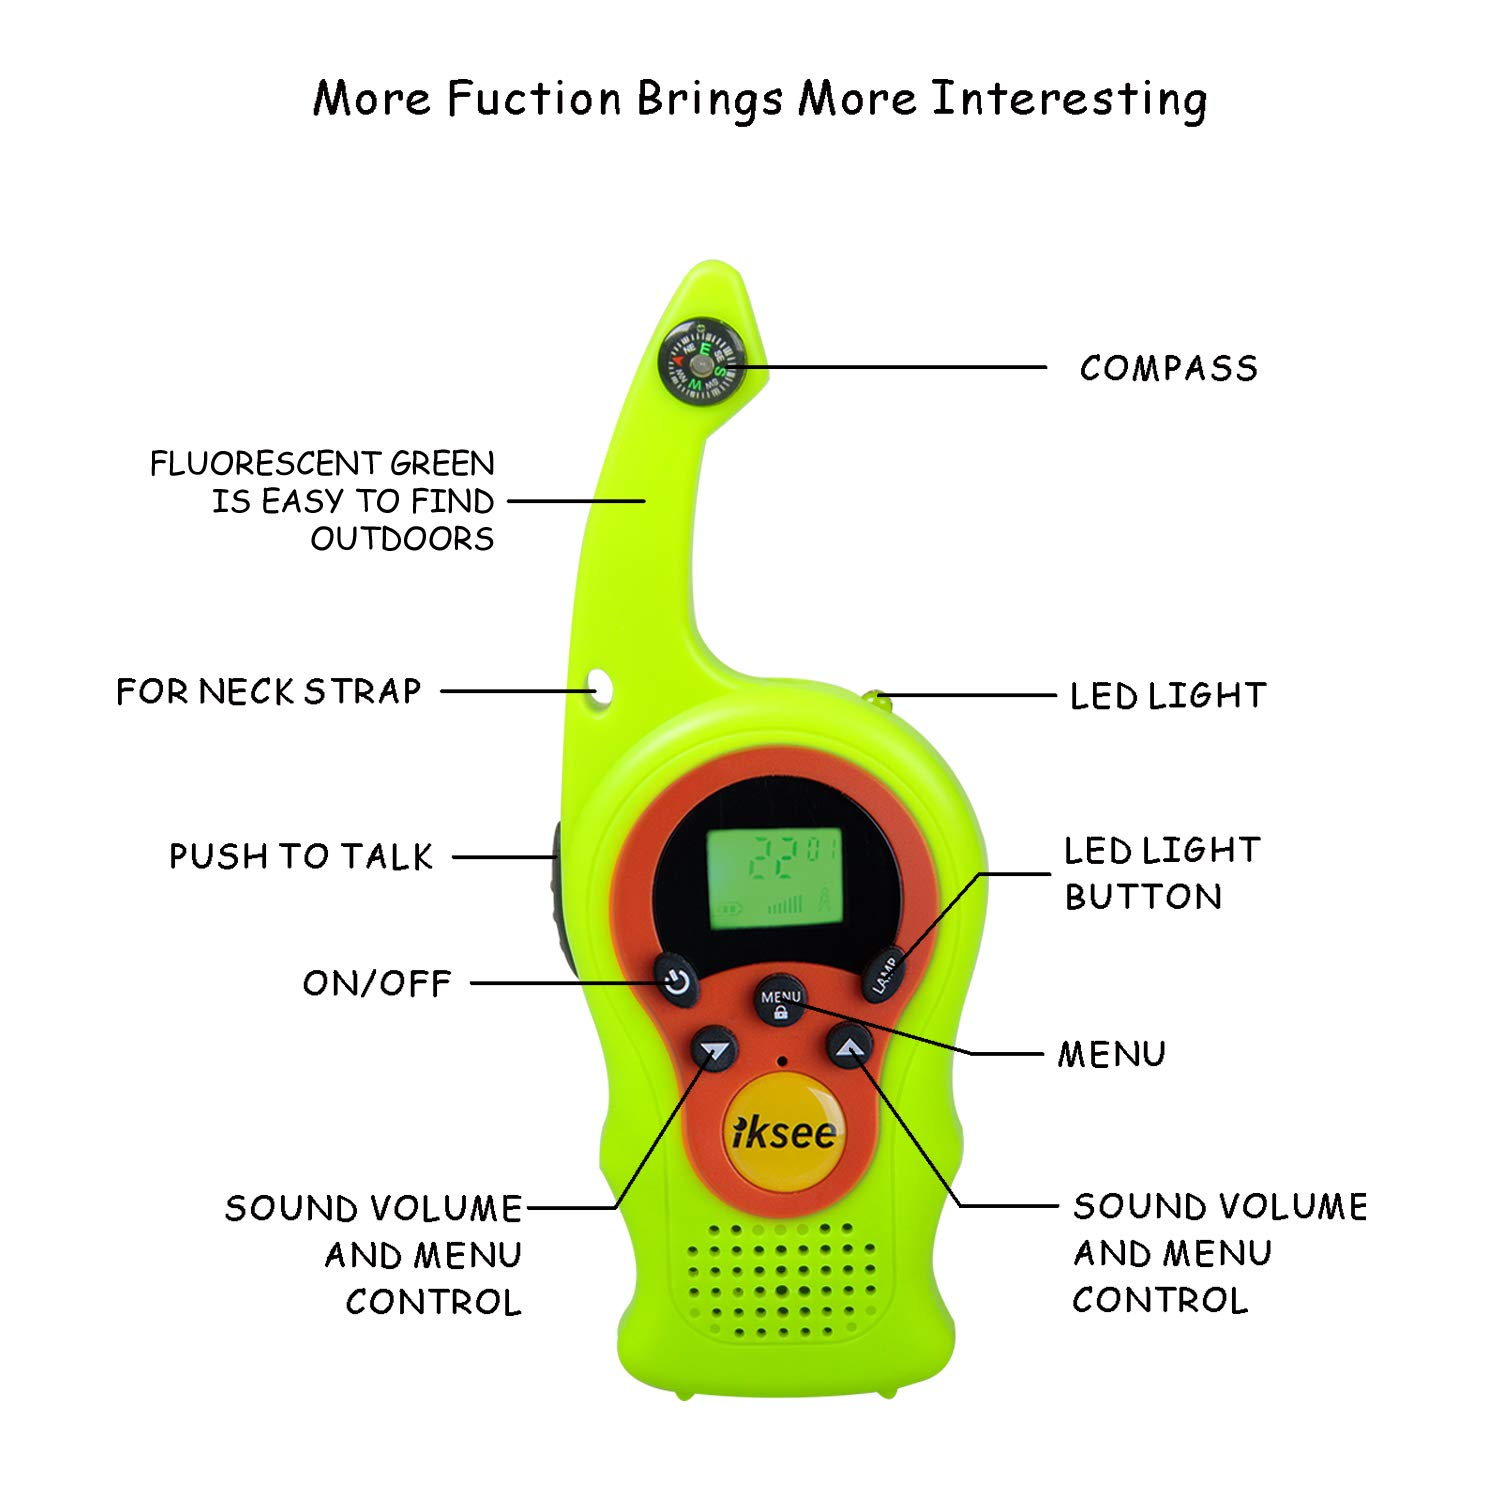 iKsee 2019 Must-Have Dung Beetle Walkie Talkie Set for Adults and Kids with Compass Flashlight, 3+ Mile Long Range Two Way Radios Toys Gifts for 5-12 Boys Girls Awards and Family Games (Green,1 Pair) by iKsee (Image #2)